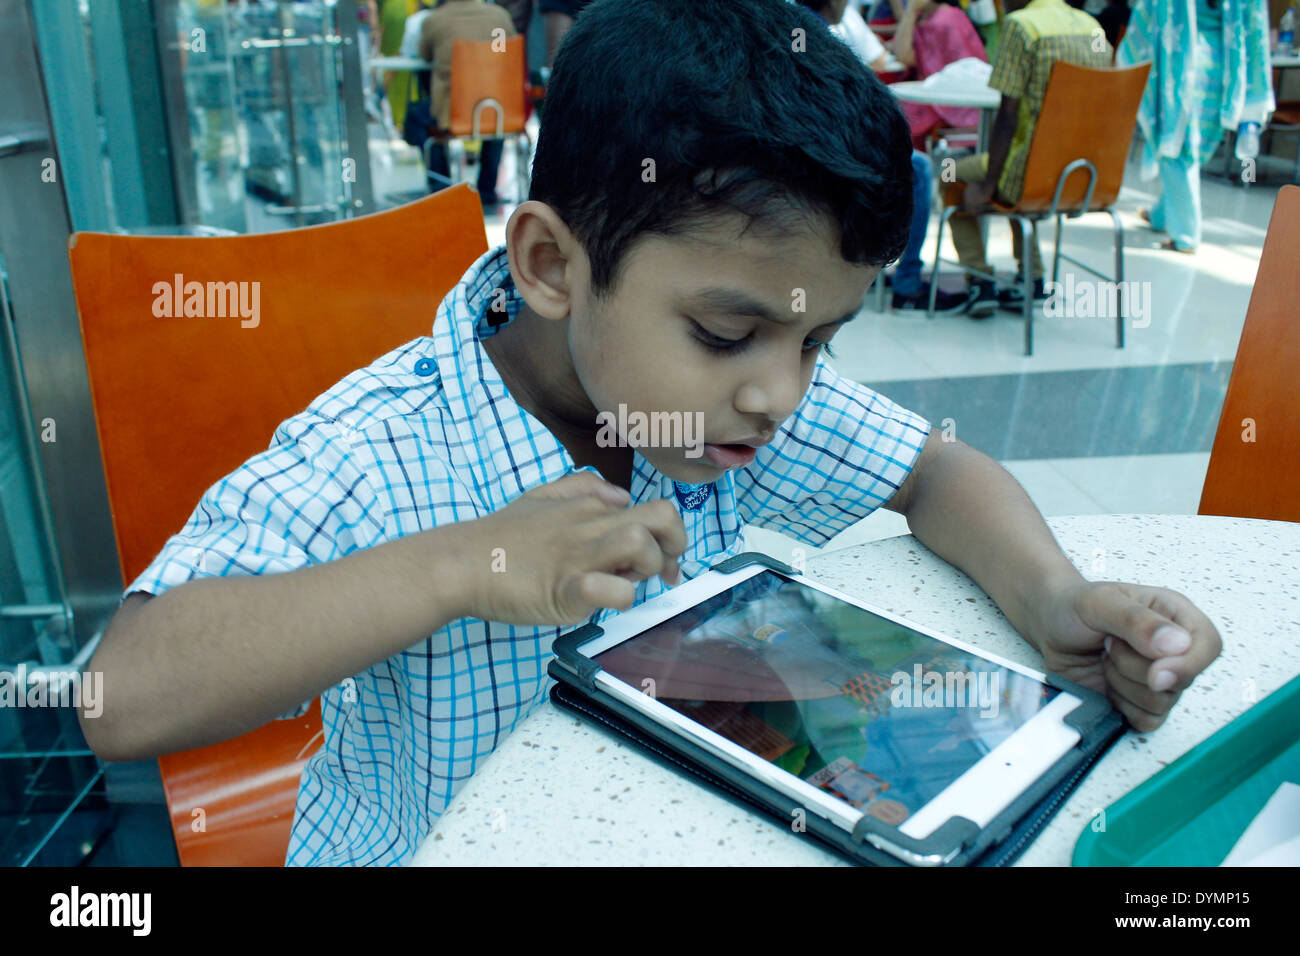 Indian boy playing on an ipad - Stock Image